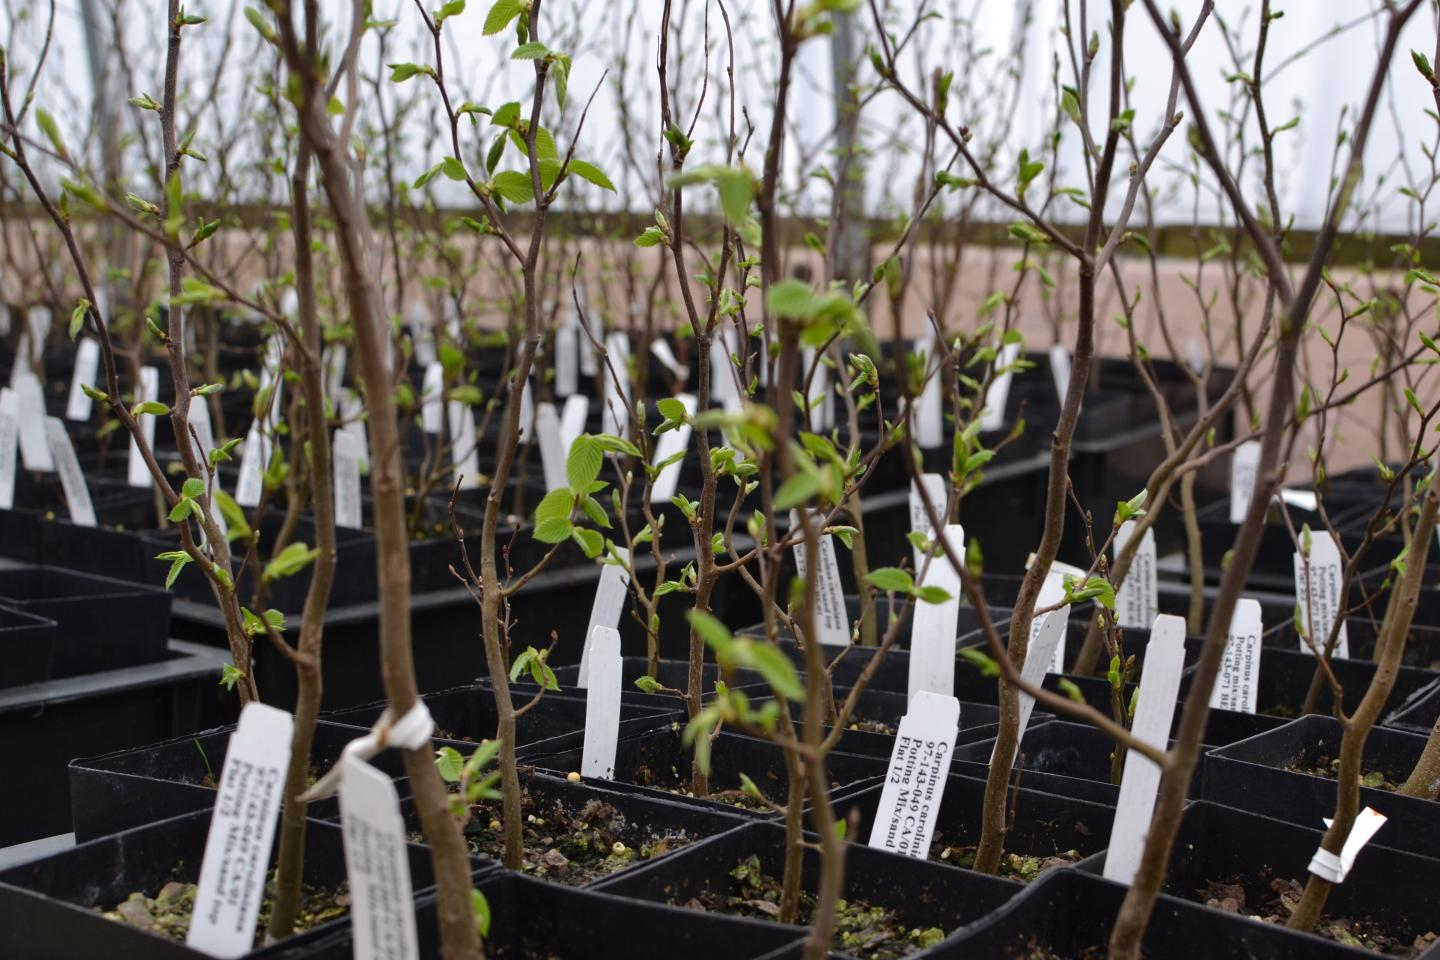 Living Collections and Ex Situ Conservation